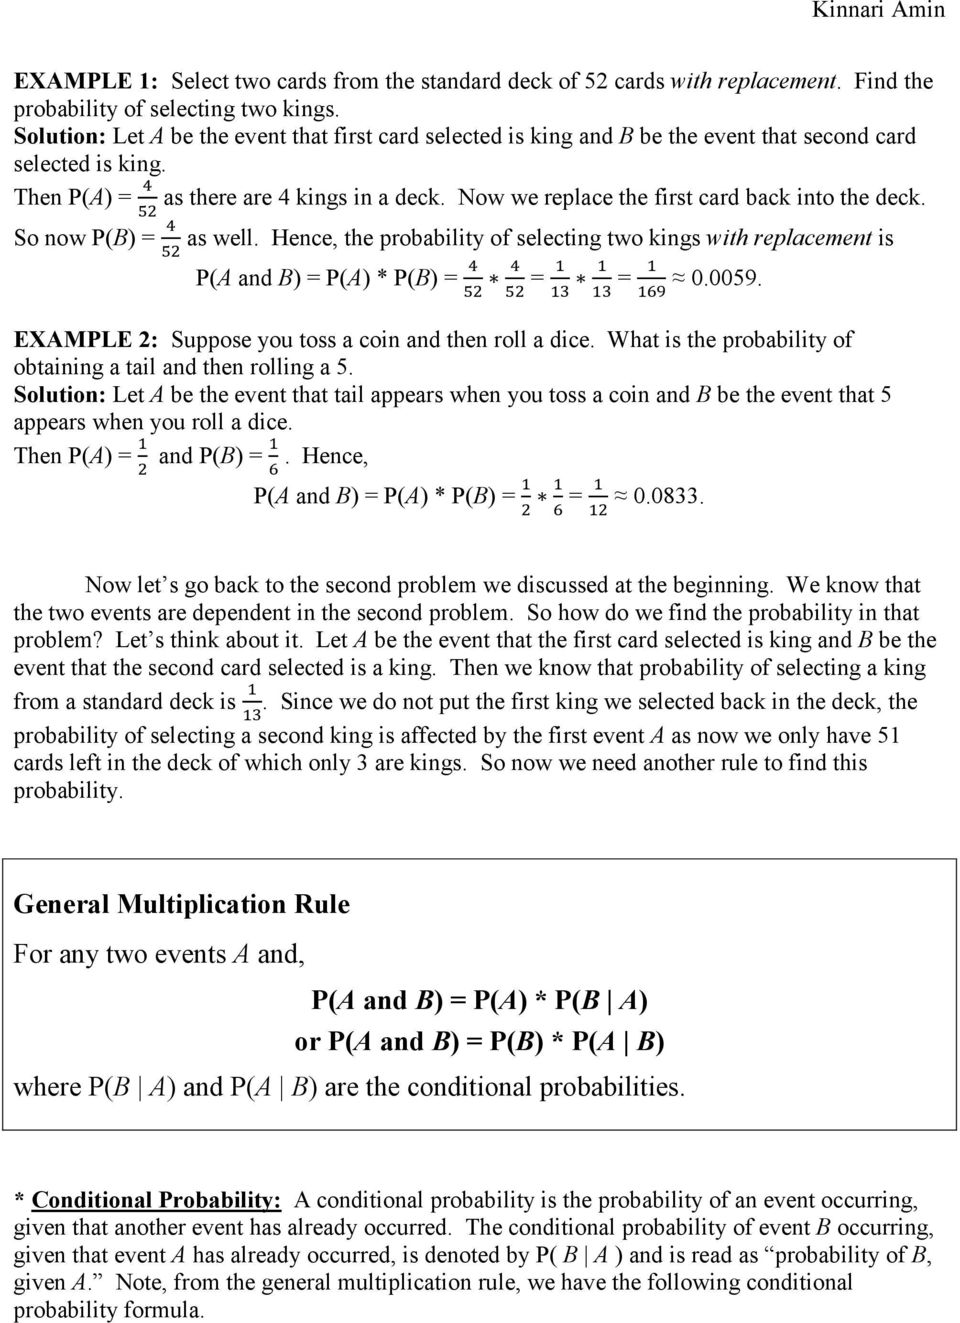 Conditional Probability And General Multiplication Rule Pdf